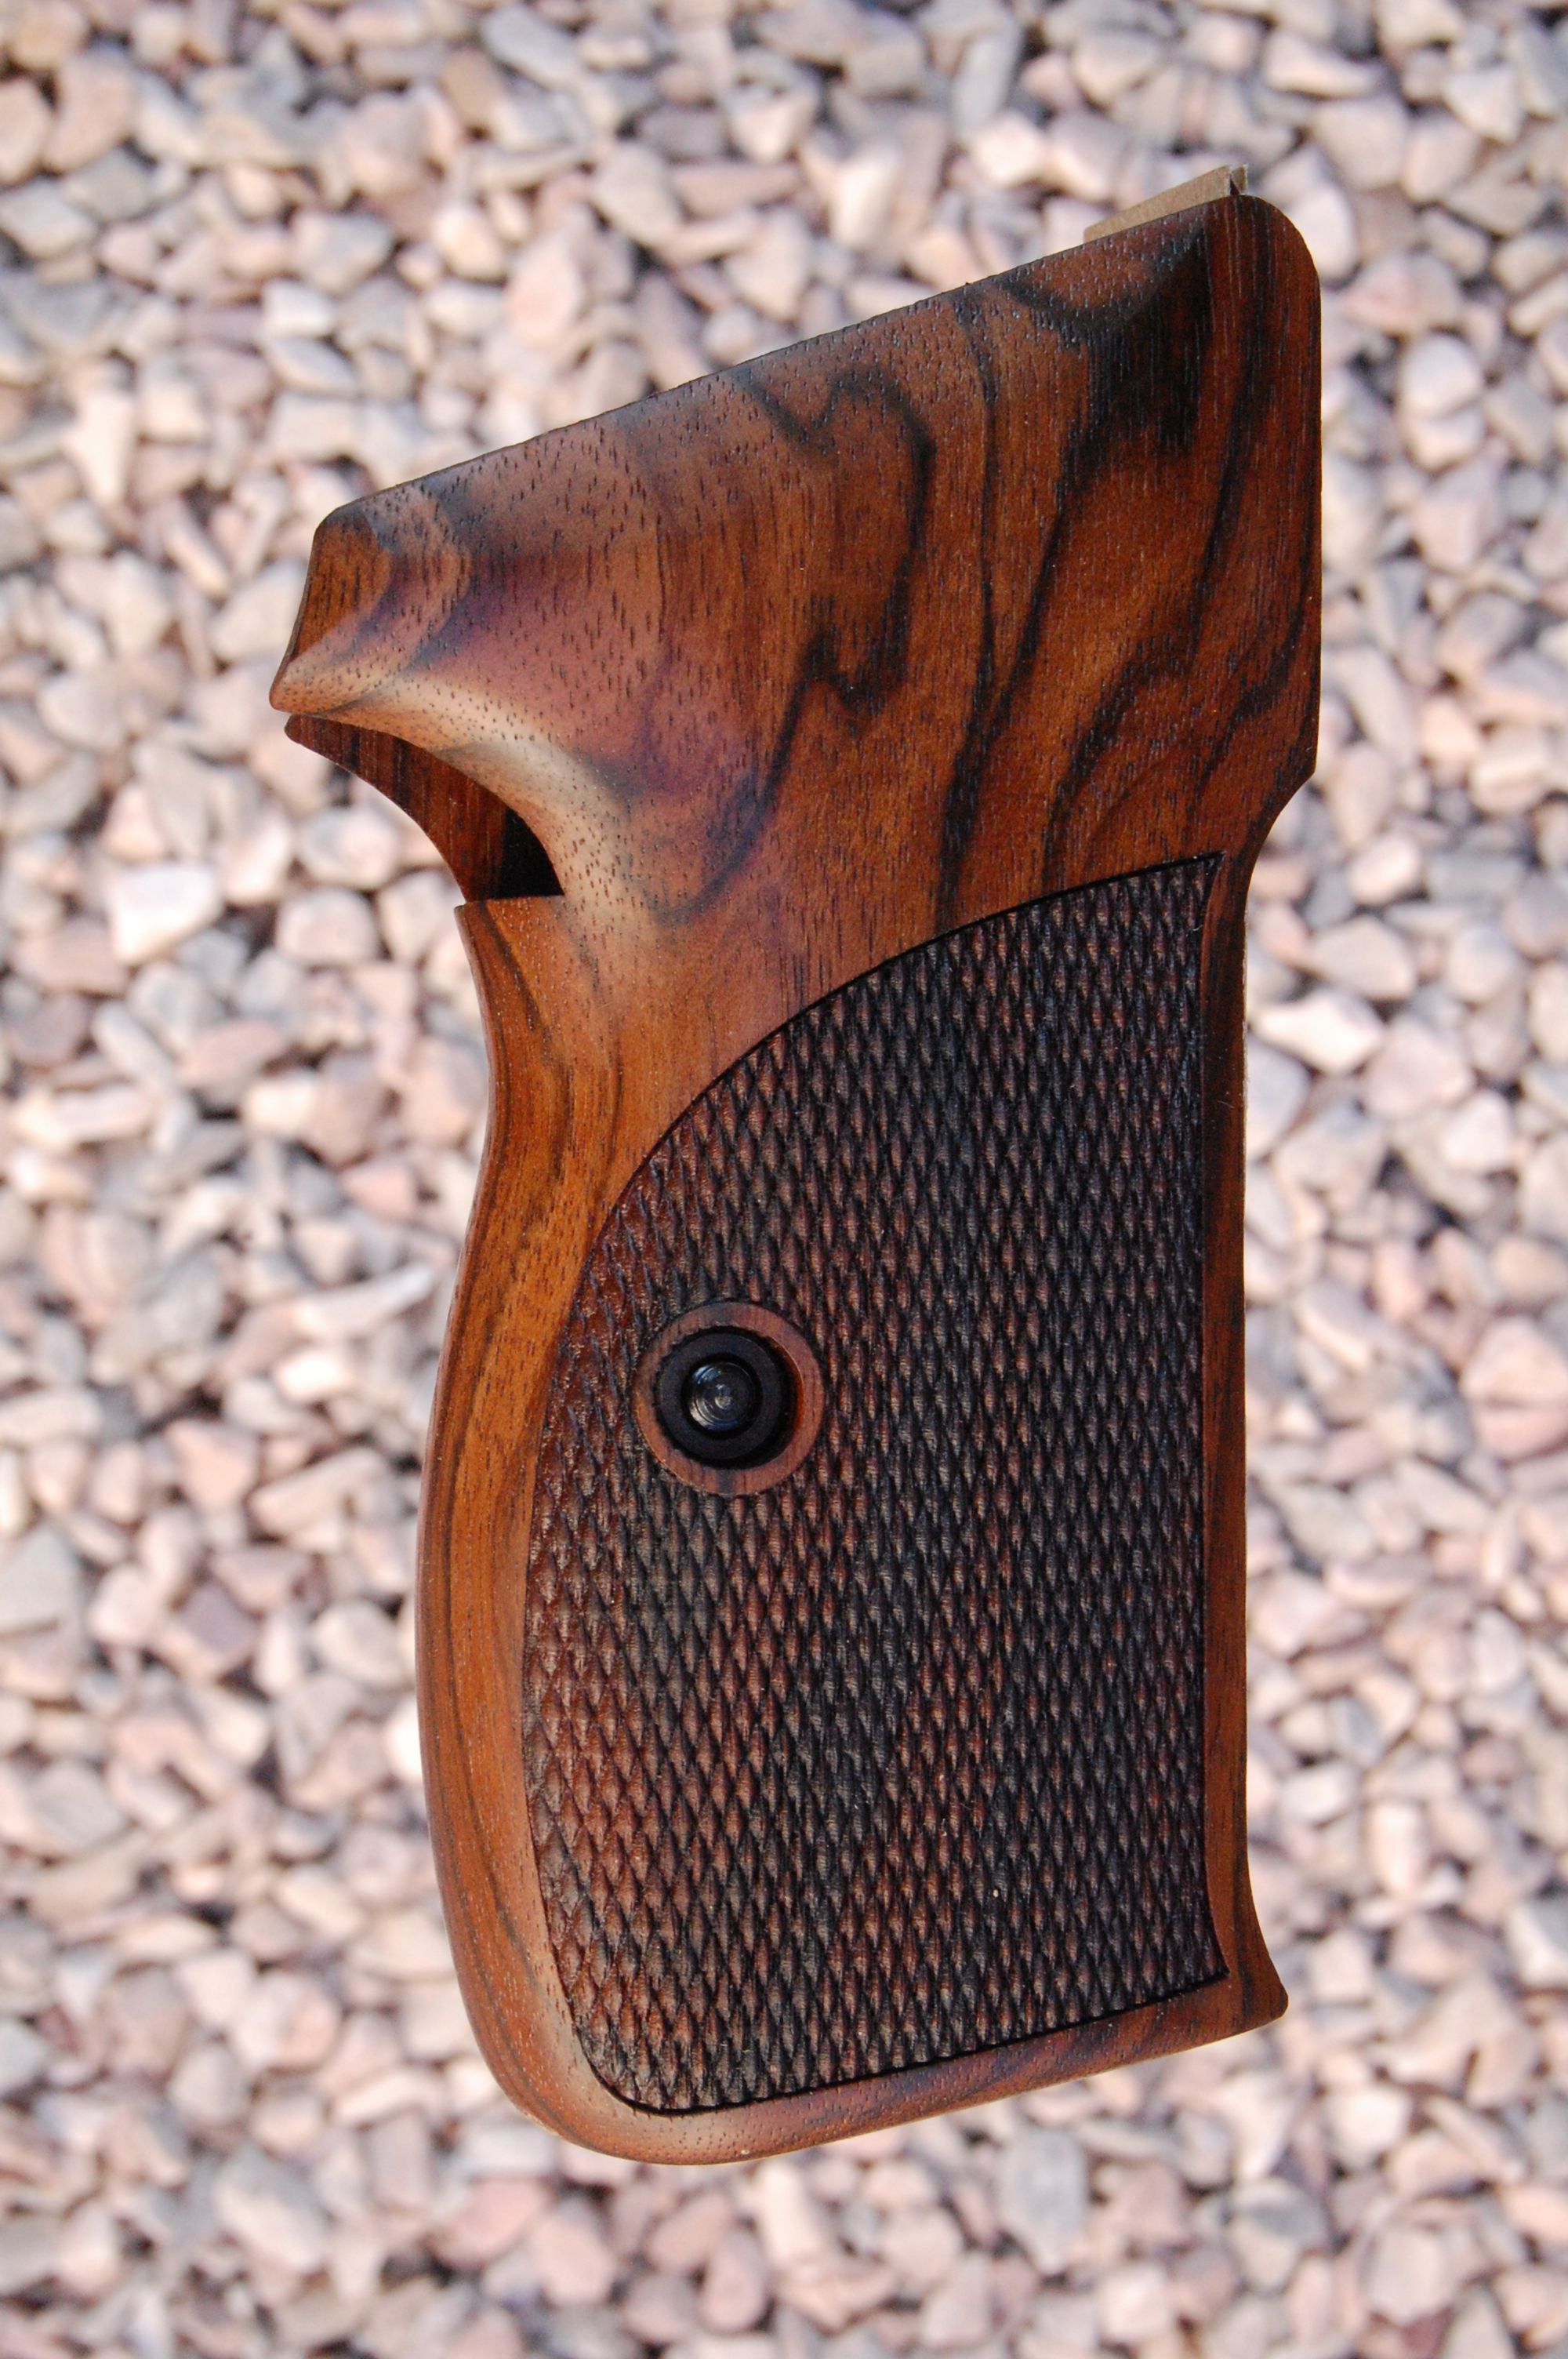 SIG P210 Super Target 5 grips (checkered) - full size